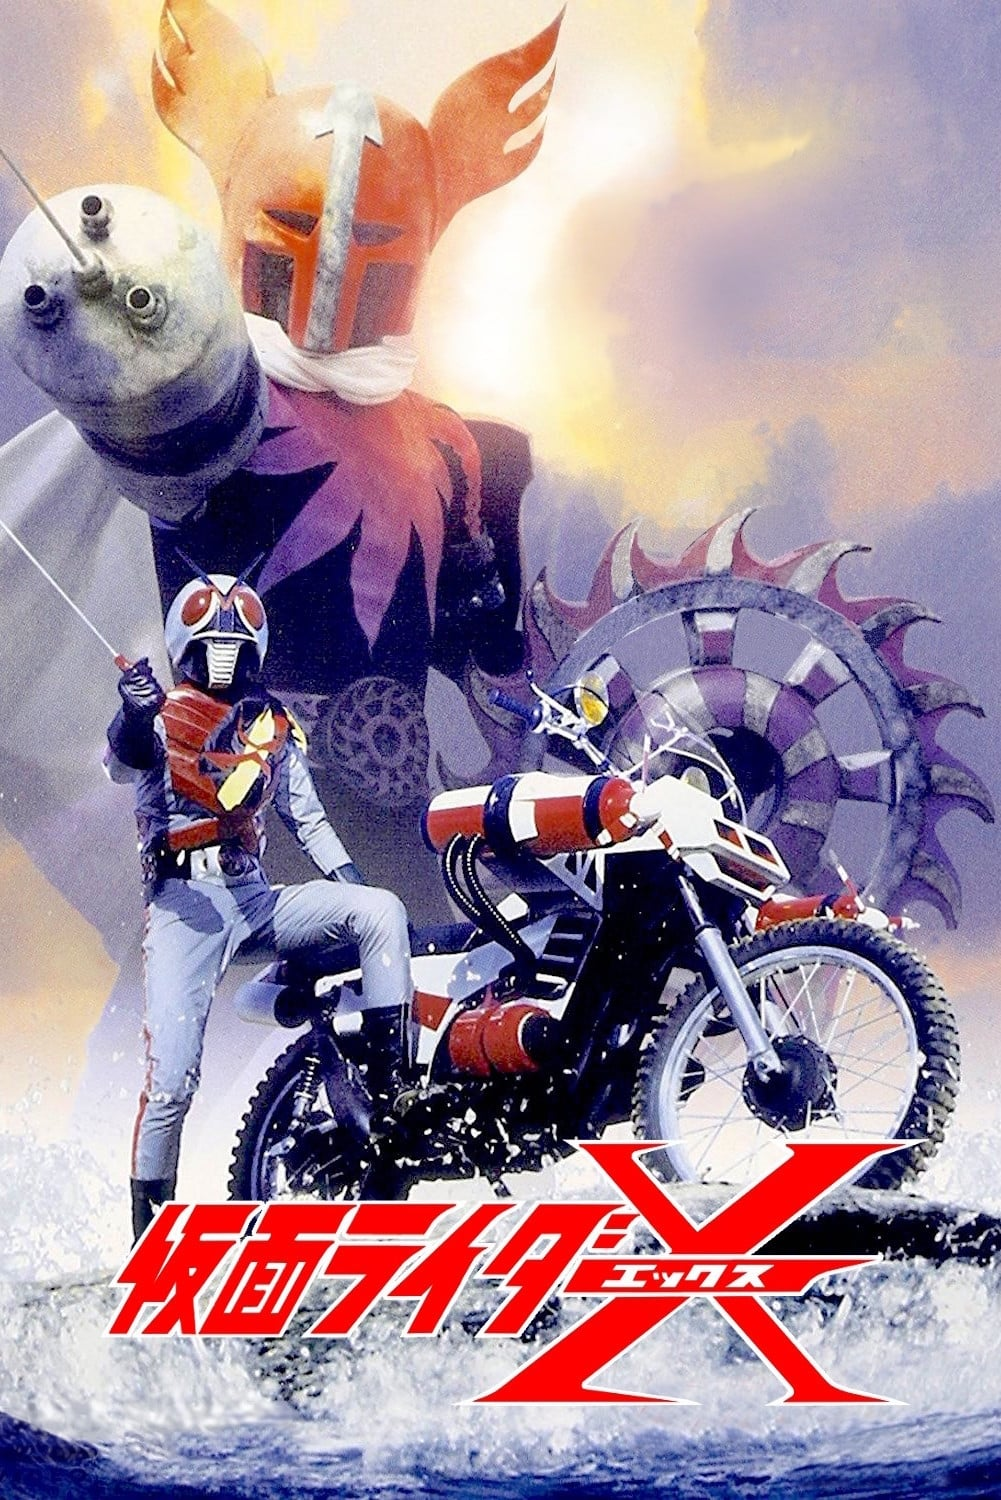 Kamen Rider - Season 21 Episode 30 : King, Panda, Memory of Flame Season 3